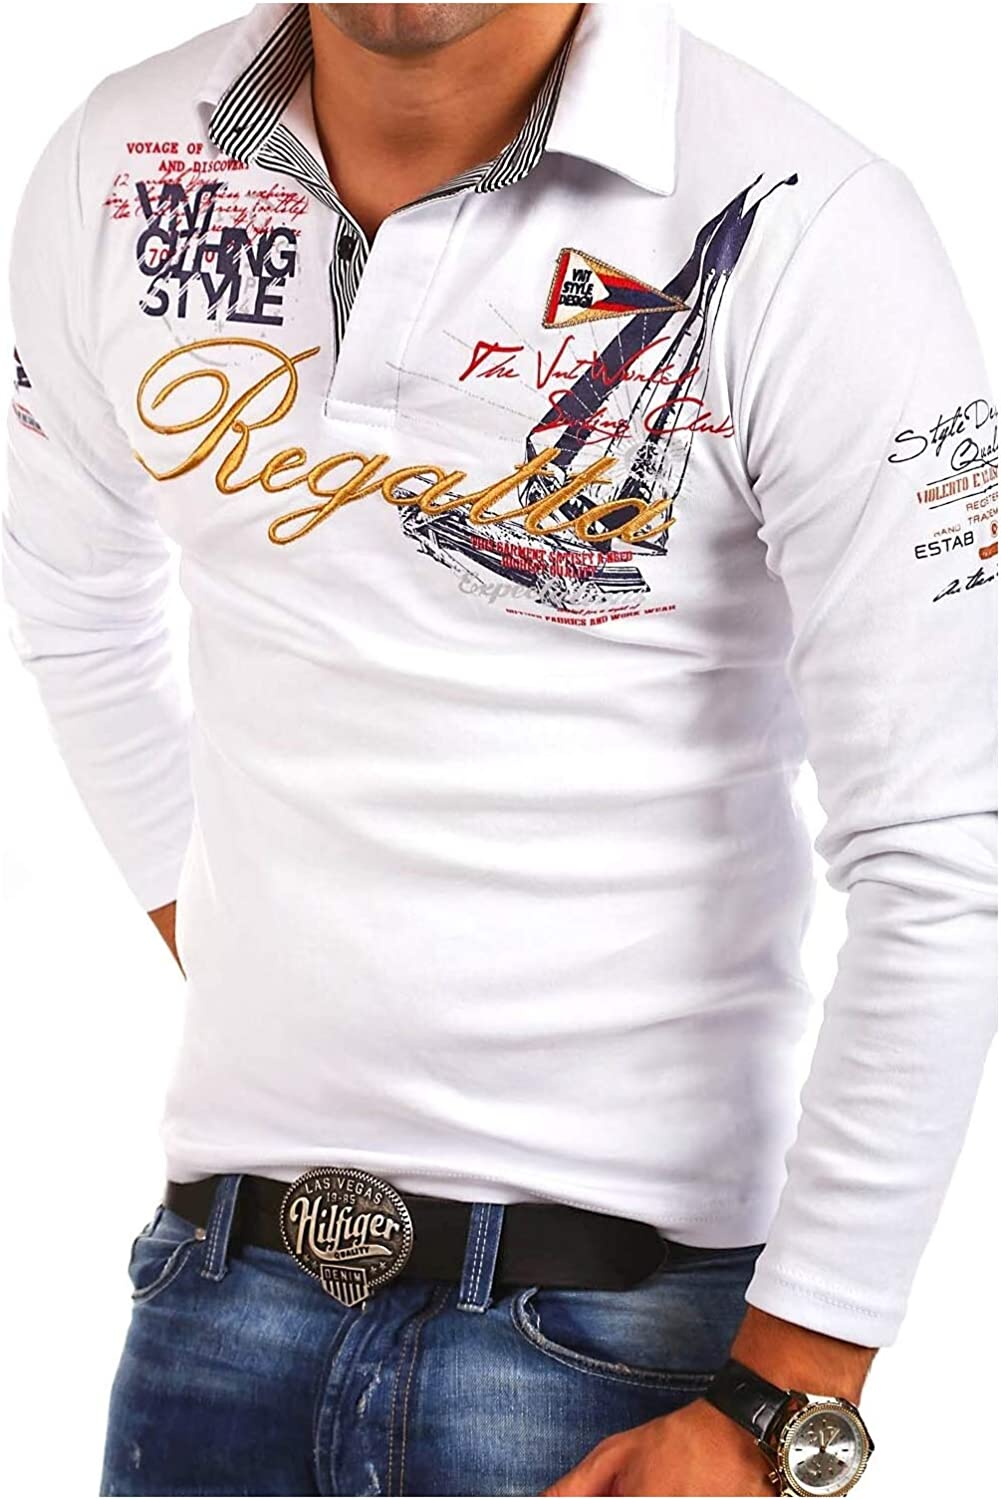 MT Styles 2in1 longsleeve Polo Shirt P-MONACO R-0760